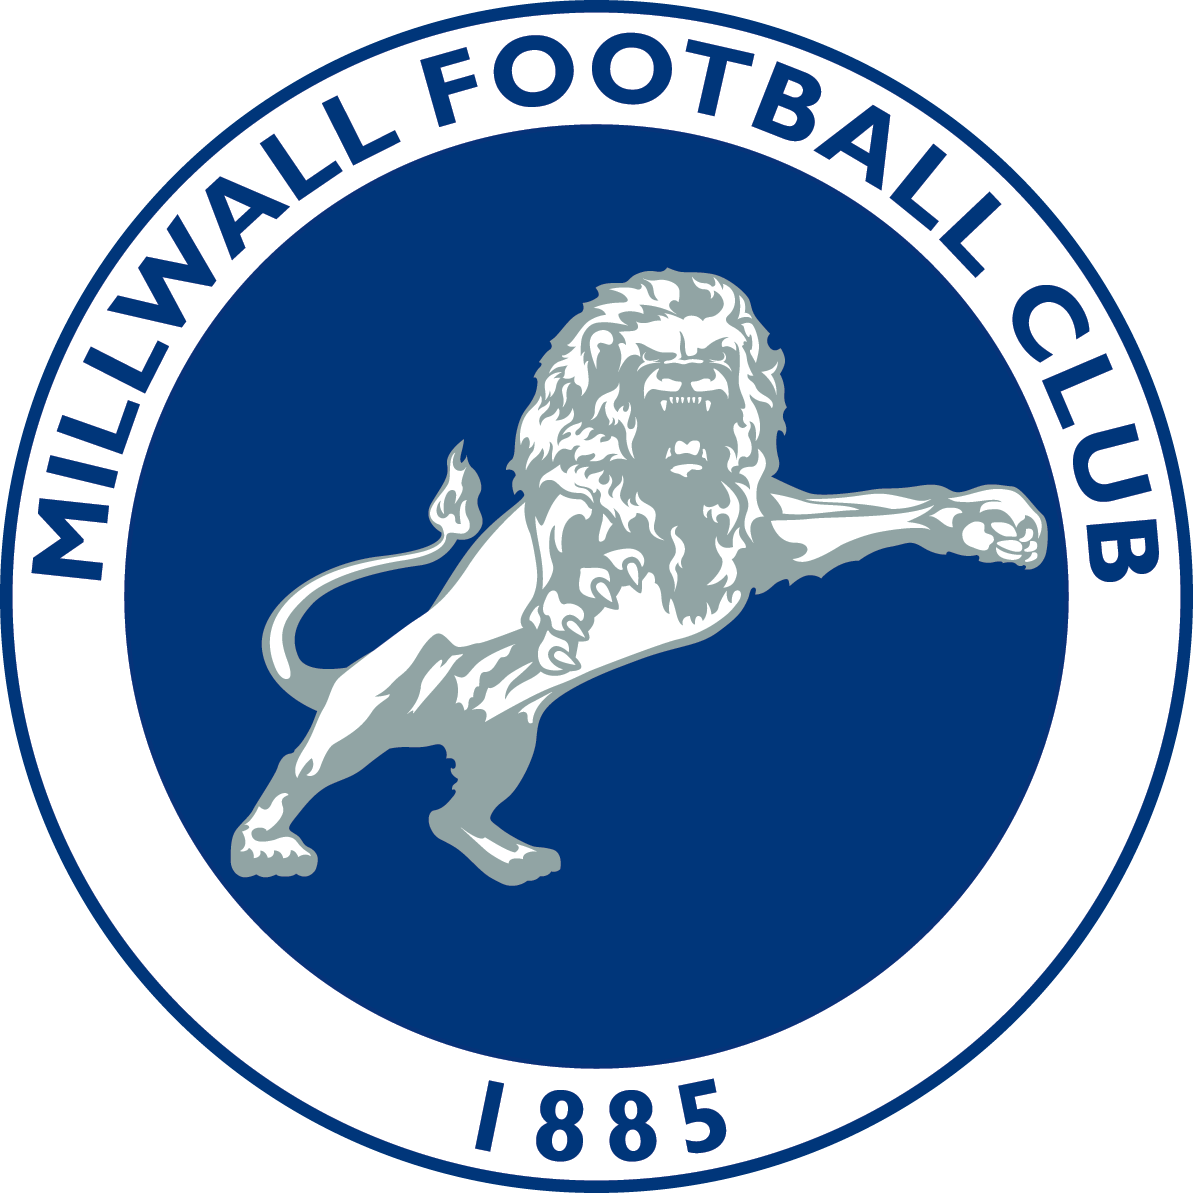 The mighty Millwall. No one likes us, we dont care